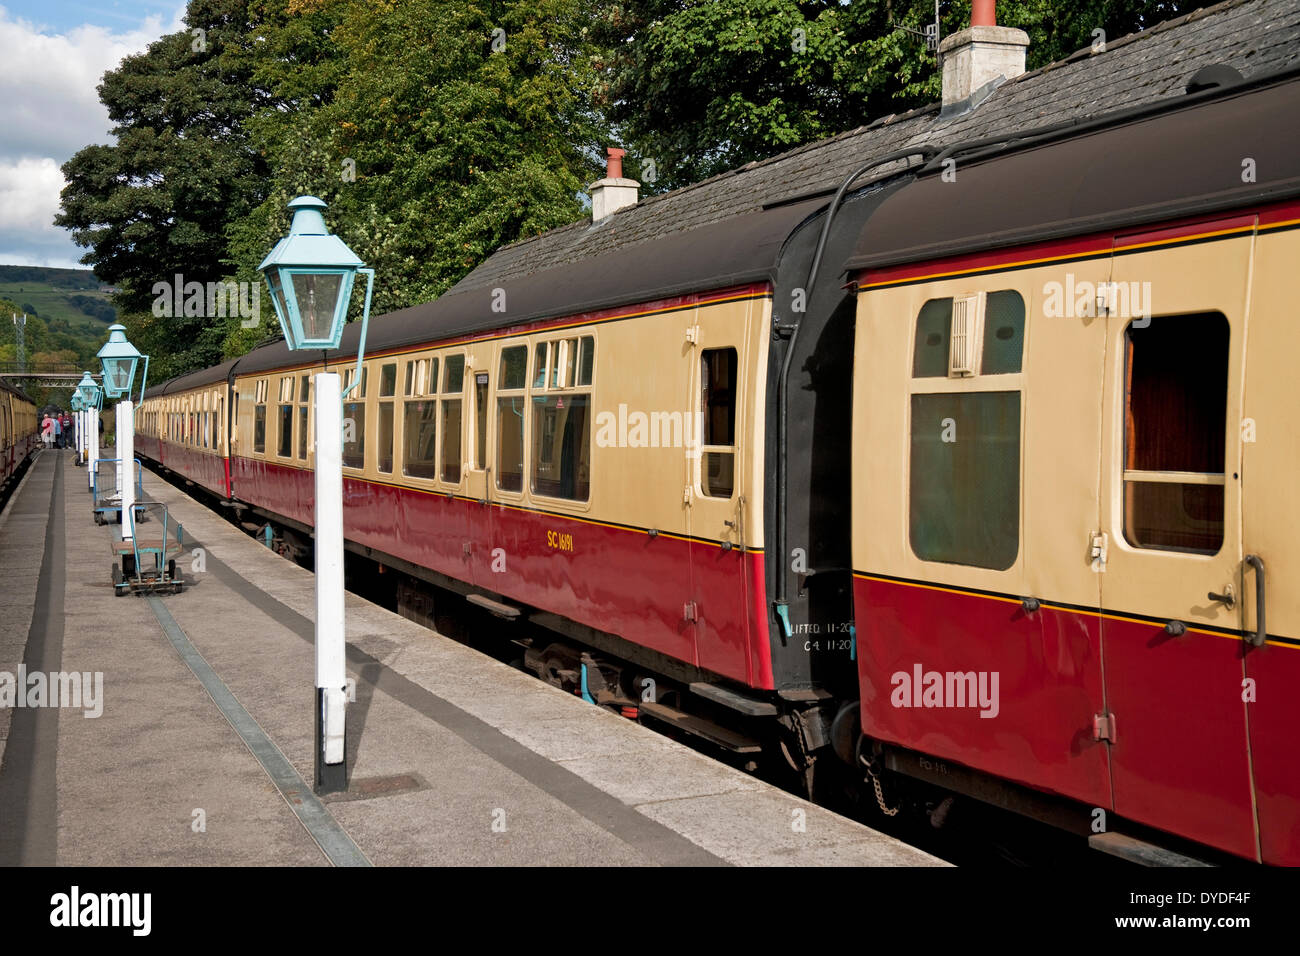 Railway carriages at Grosmont Station. - Stock Image